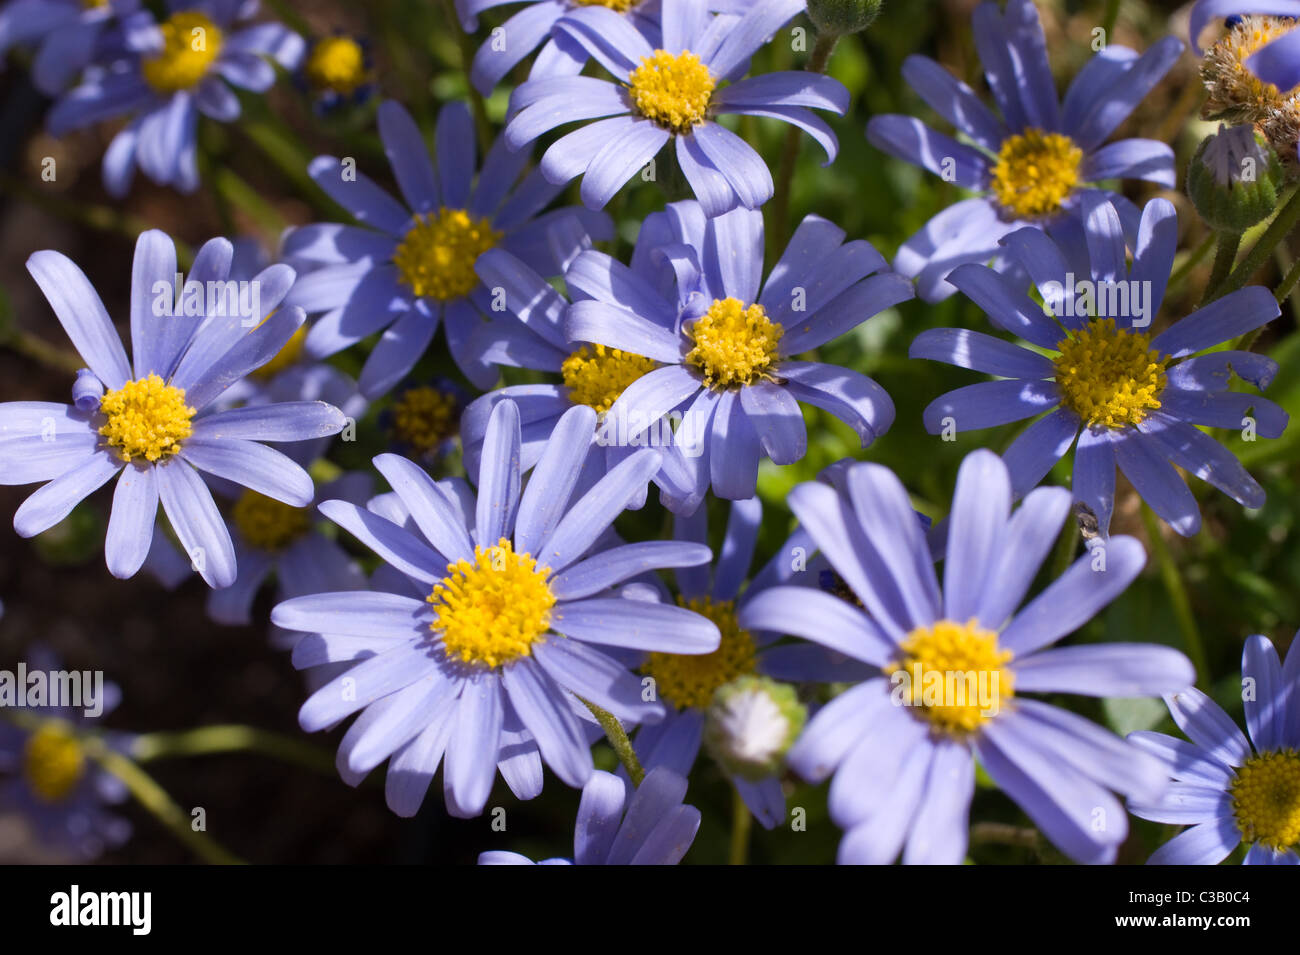 Anemone Flower Blue With Yellow Centre Stock Photo 36506516 Alamy